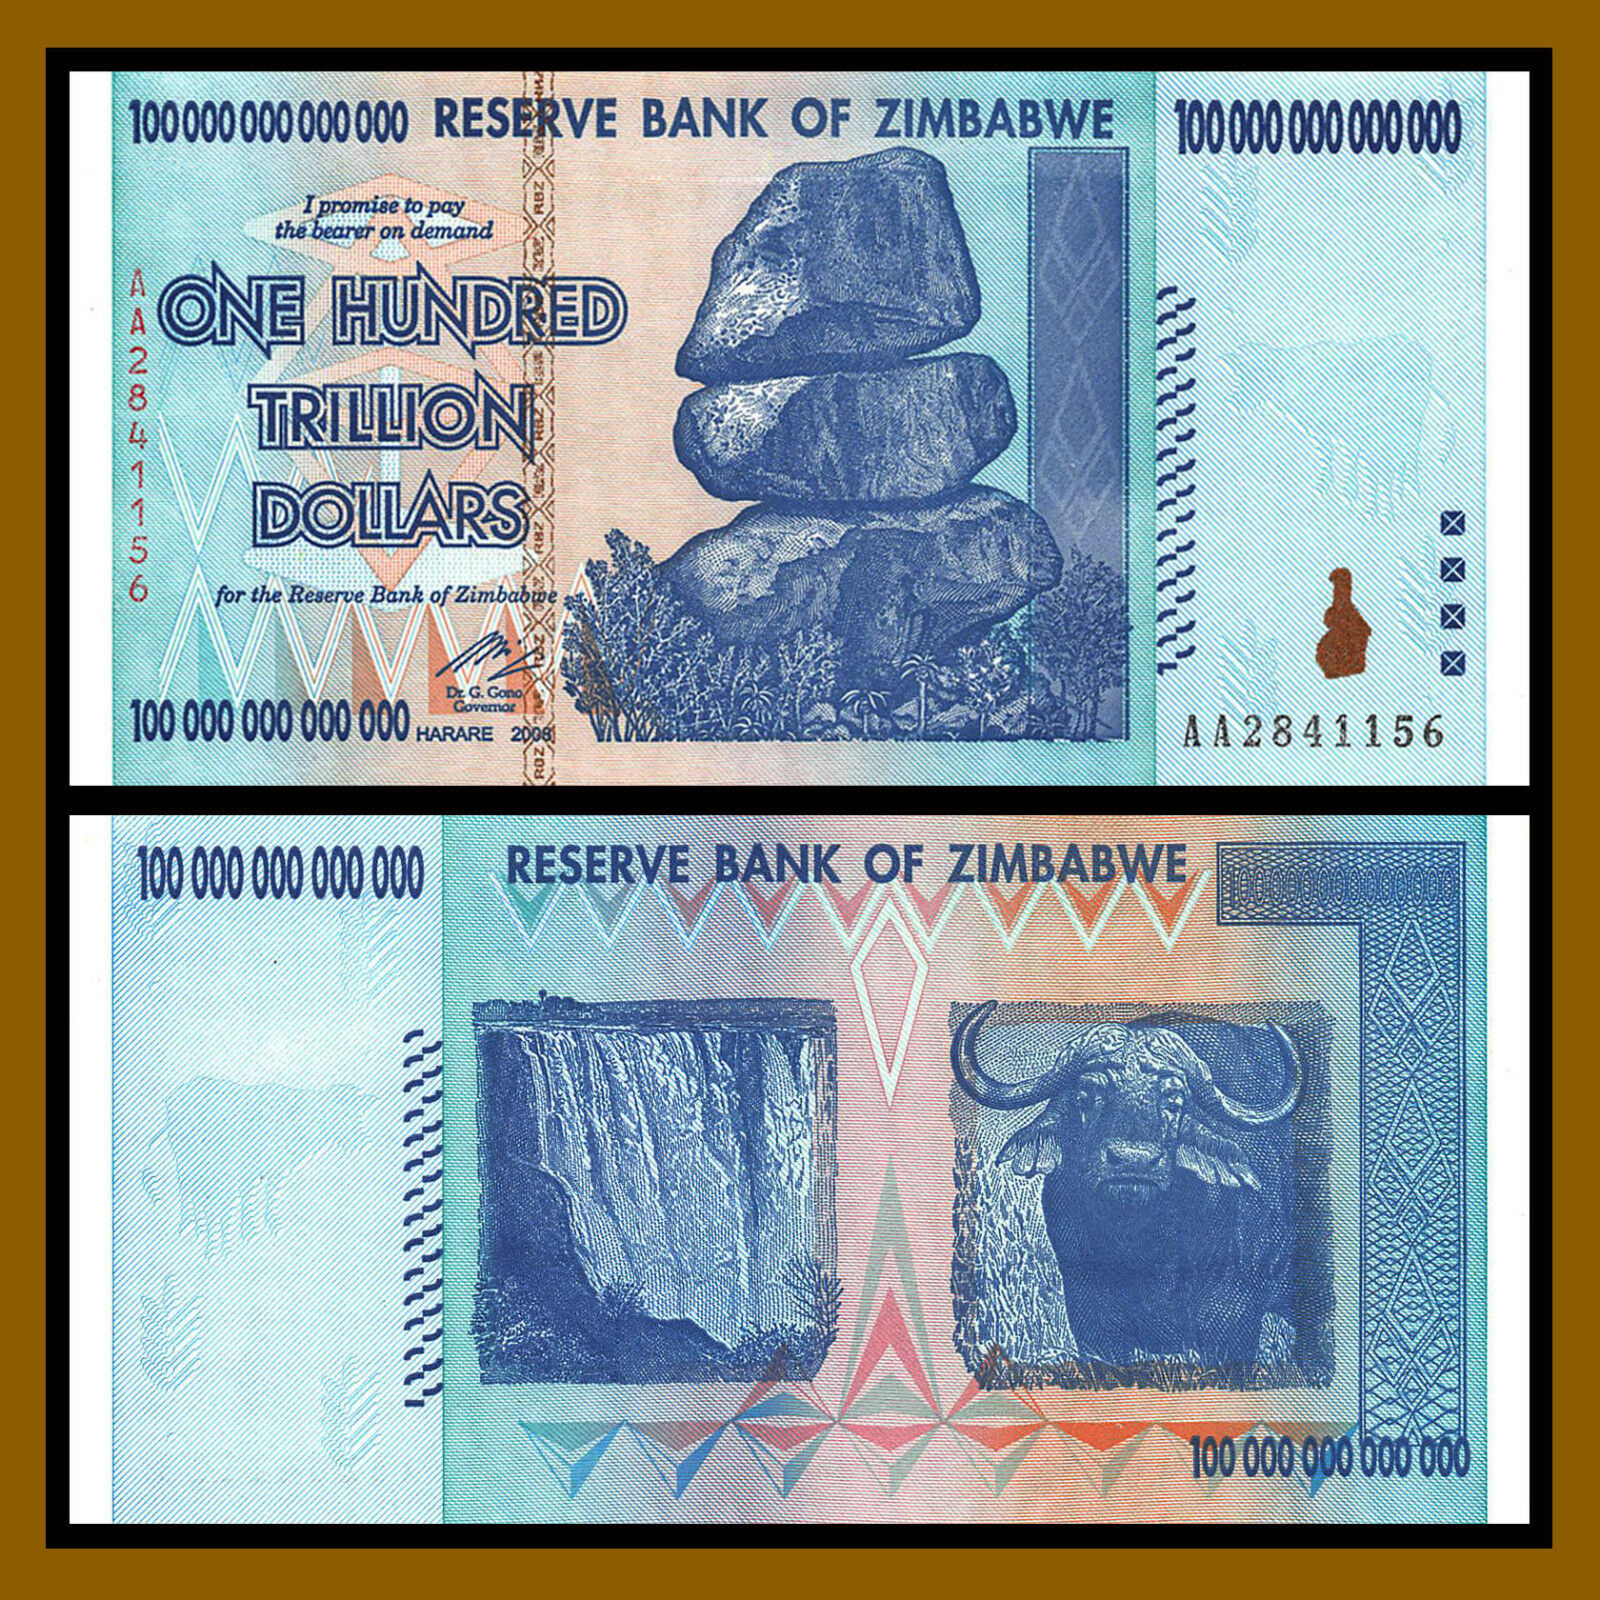 Zimbabwe 100 Trillion Dollars x 5 Pcs Bundle, 2008 AA P-91 Unc